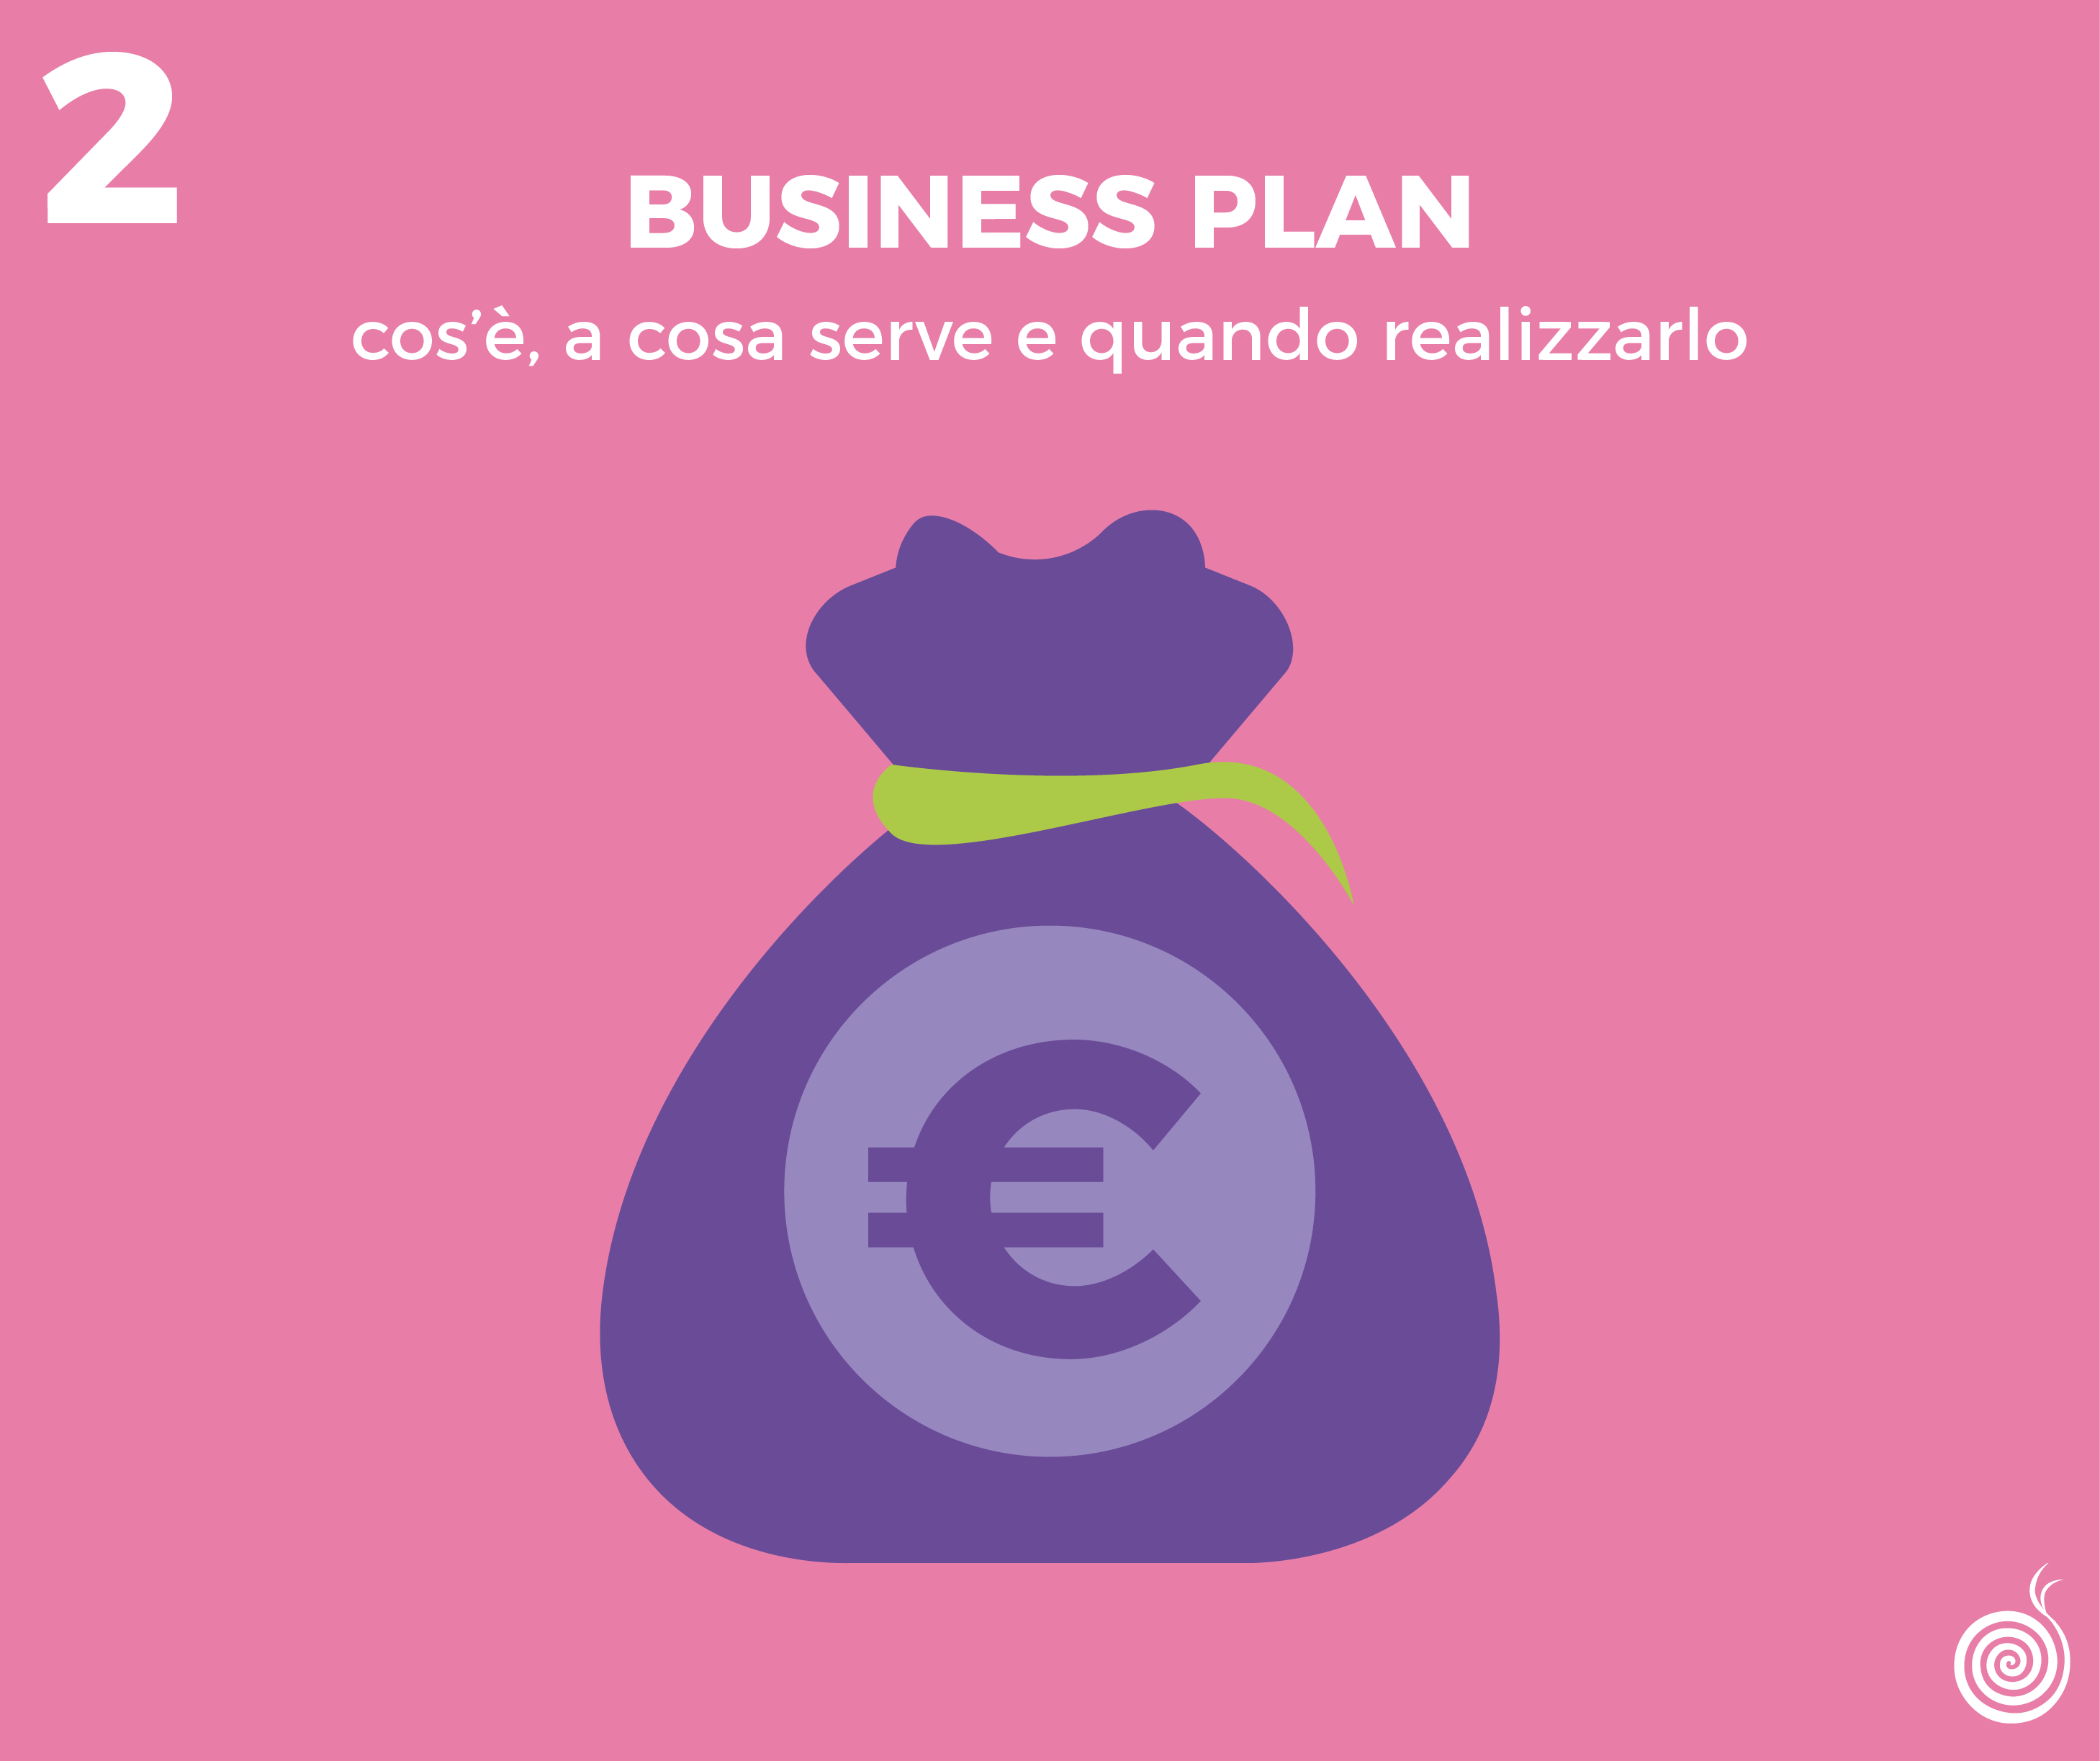 Business plan: cos'è, a cosa serve e quando realizzarlo